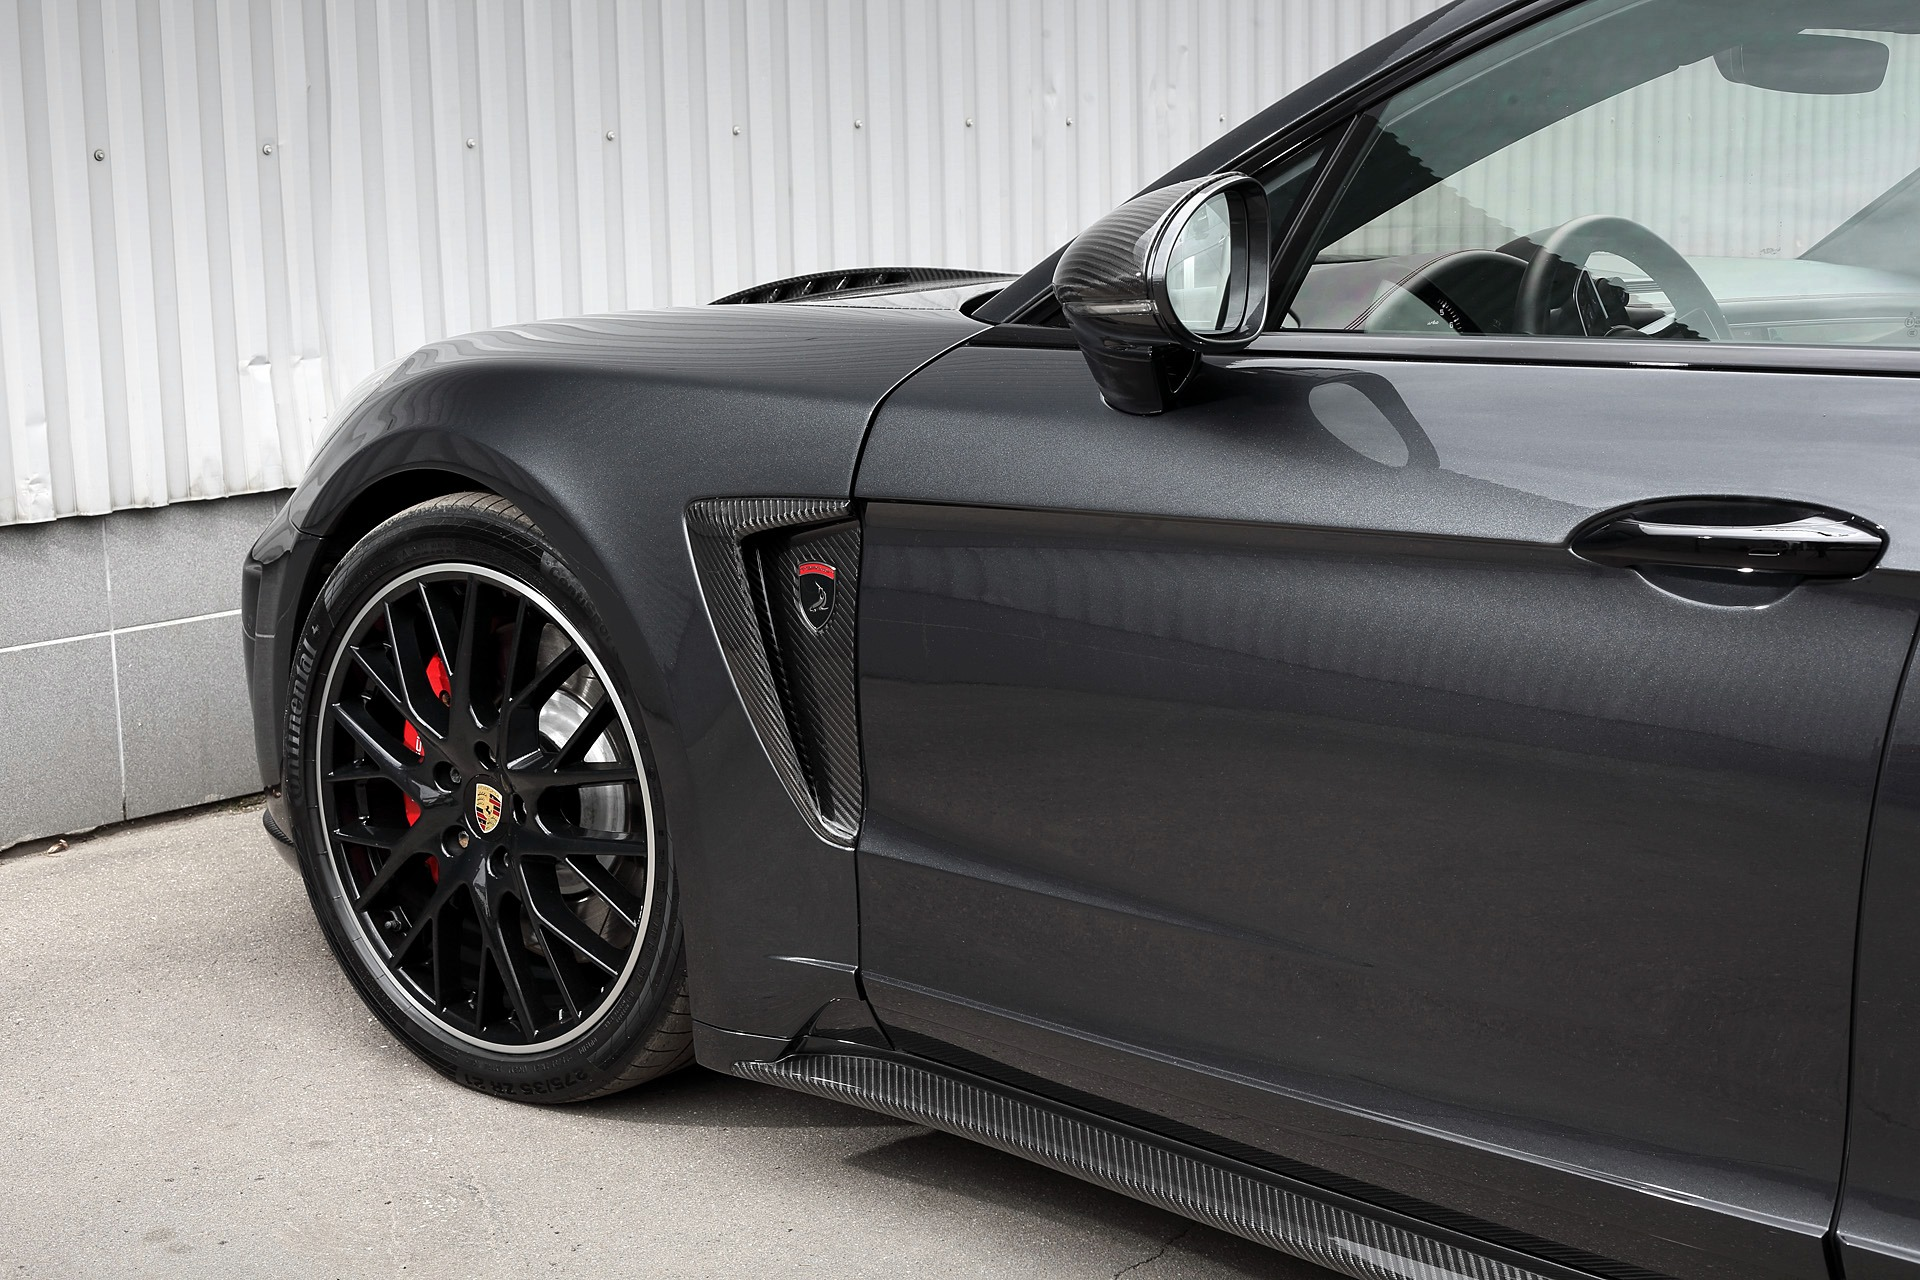 Porsche Panamera Turbo Wheels